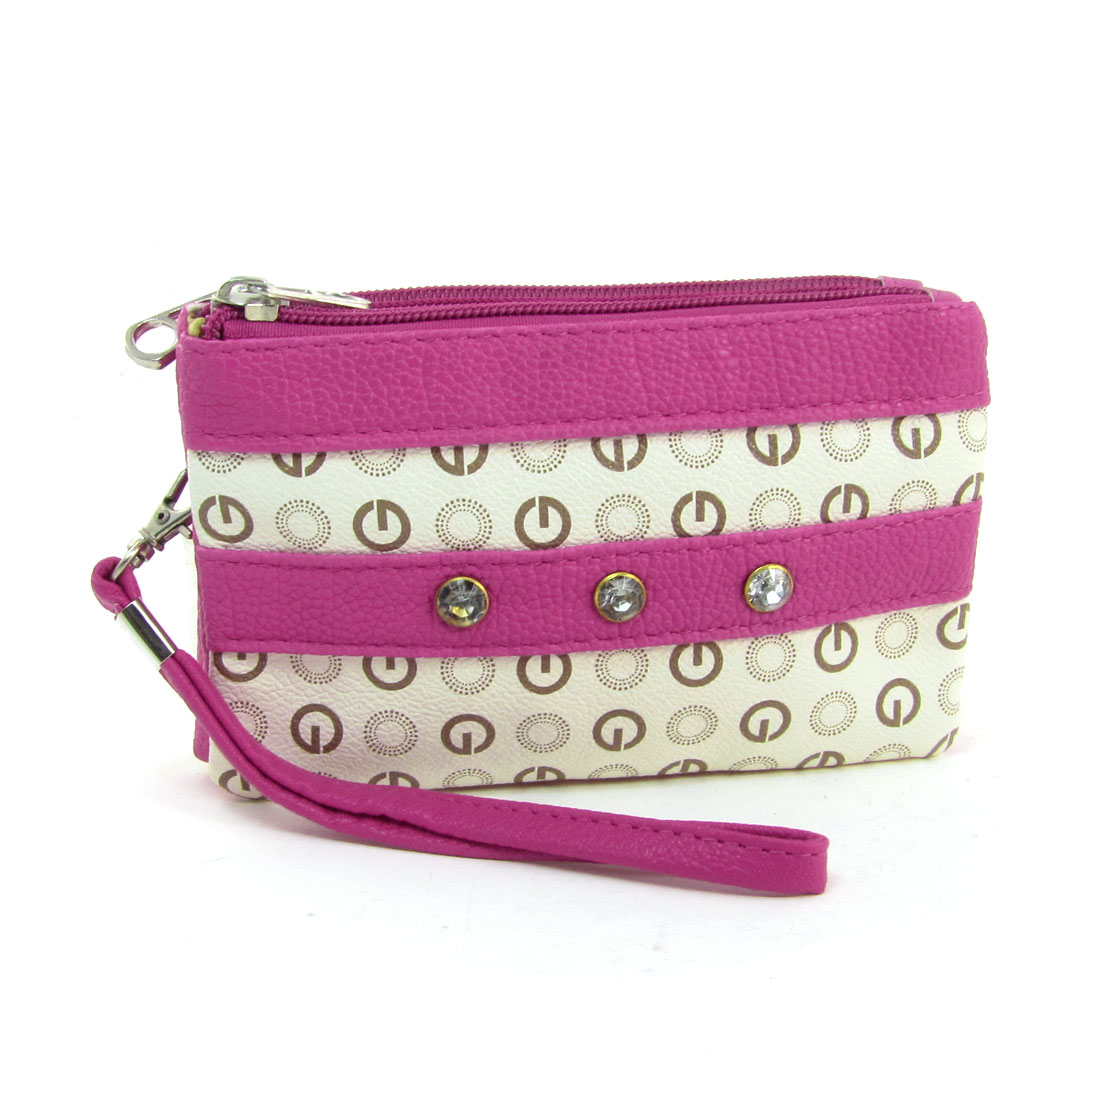 Lady Three Zipper Closure Faux Leather Circle Pattern Purse Pink Beige